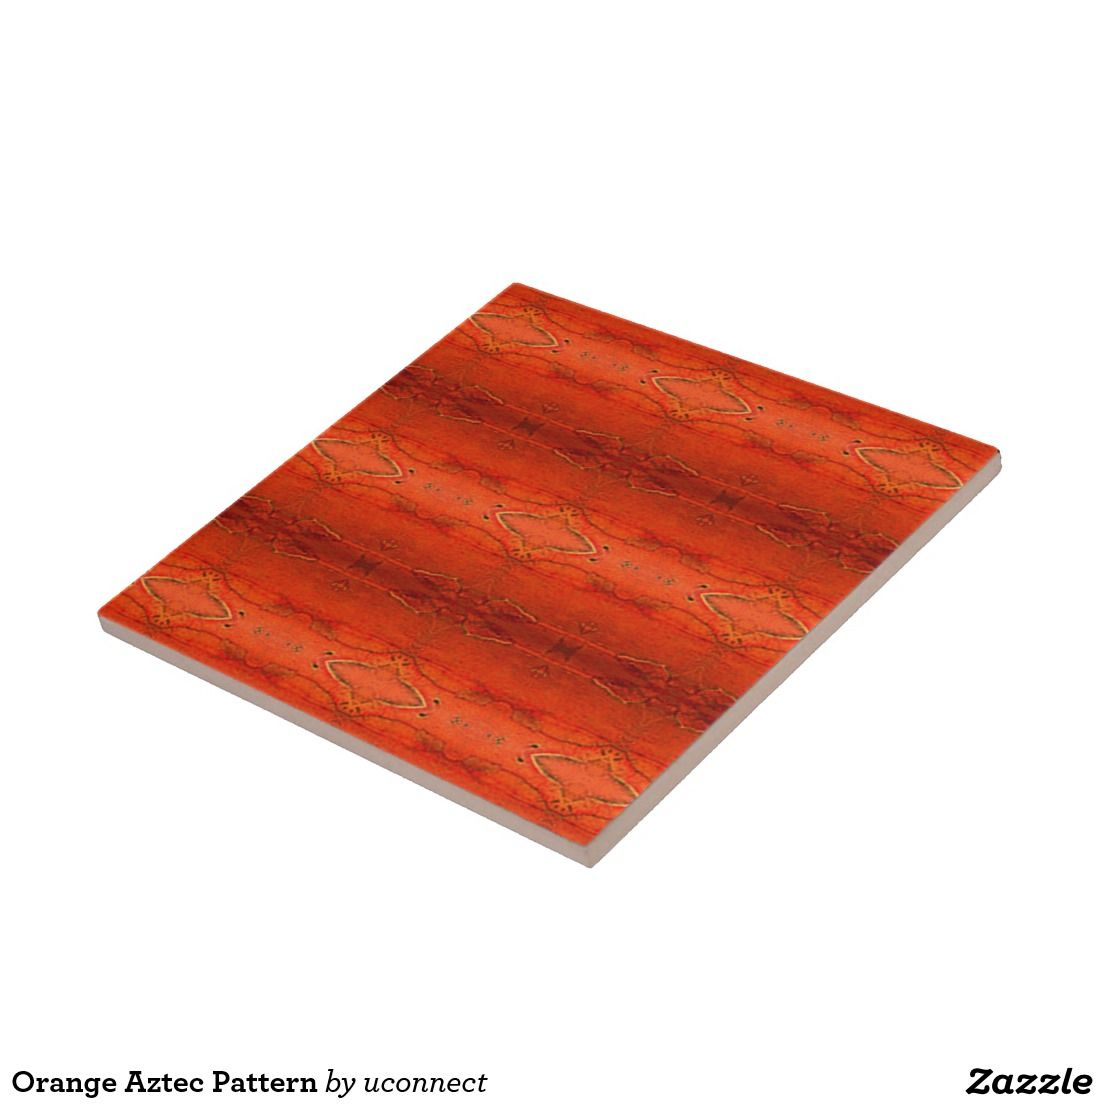 Orange Aztec Pattern Small Square Tile. For the home.